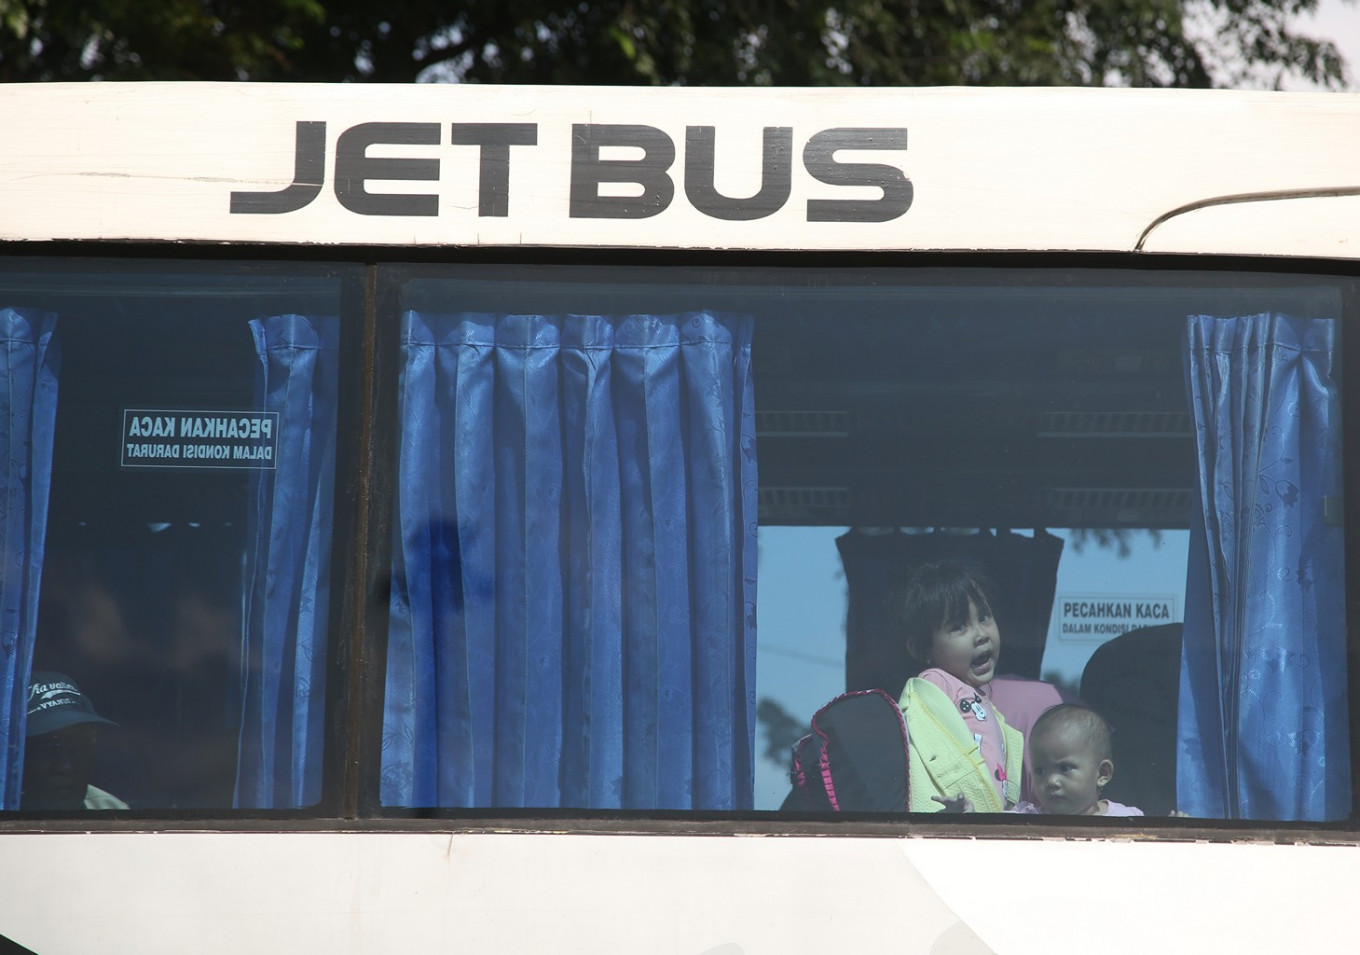 COVID-19: Jakarta to suspend interprovincial buses as 'mudik' persists